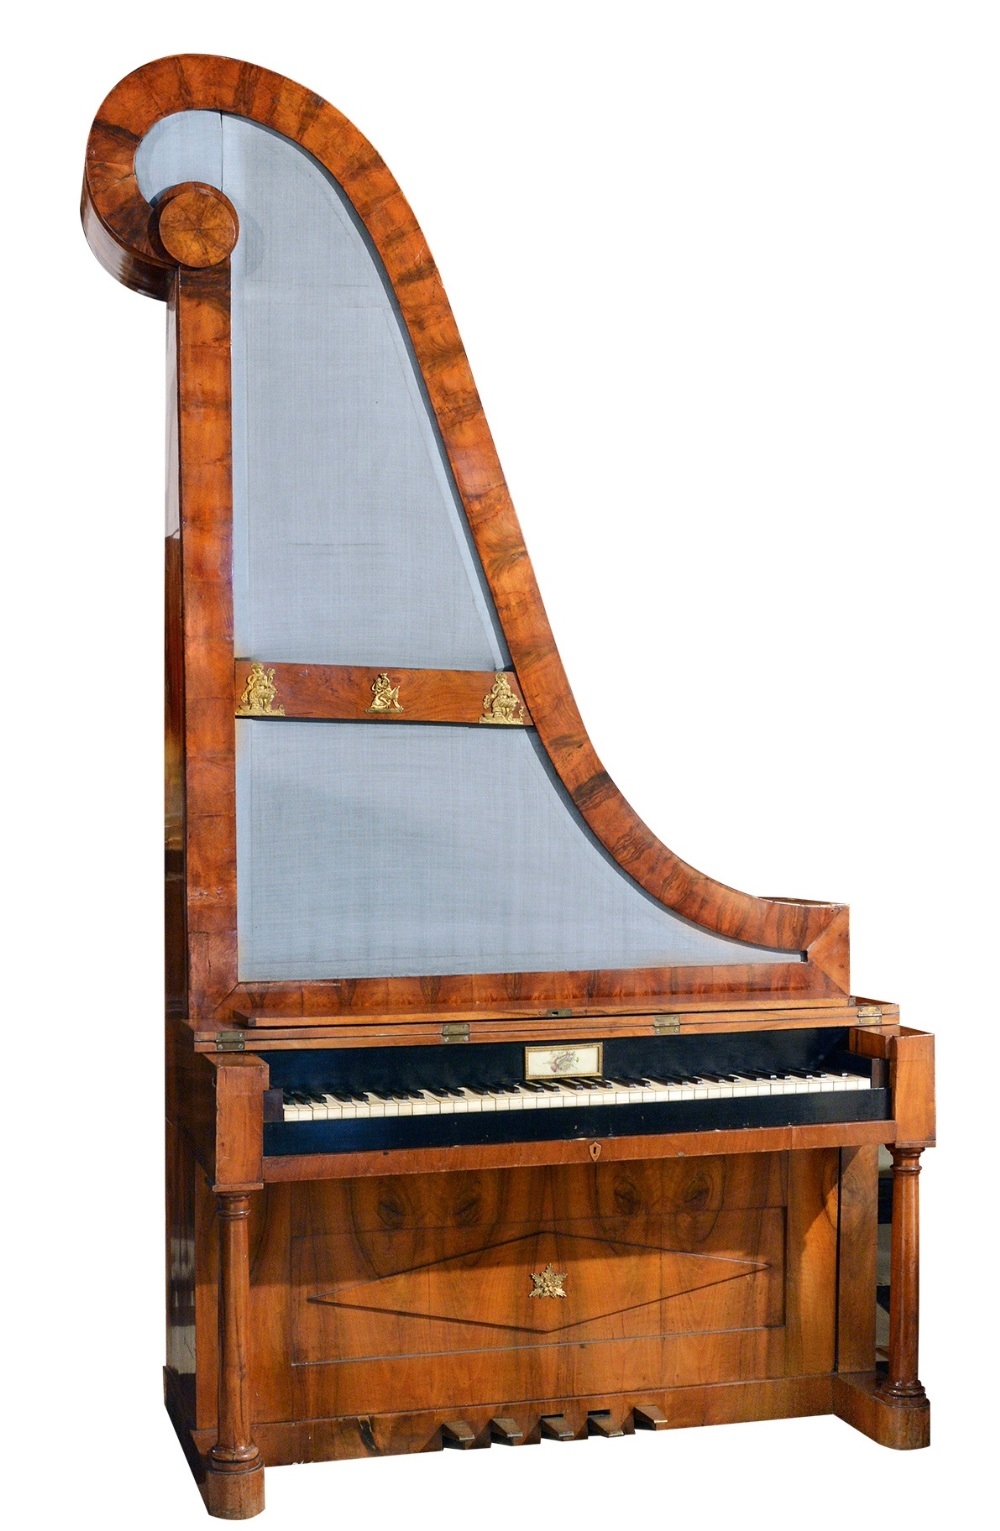 Lot 57 - Giraffe Piano, Vienna (c1825)  A rare Viennese giraffe piano in an ornate walnut case with turned